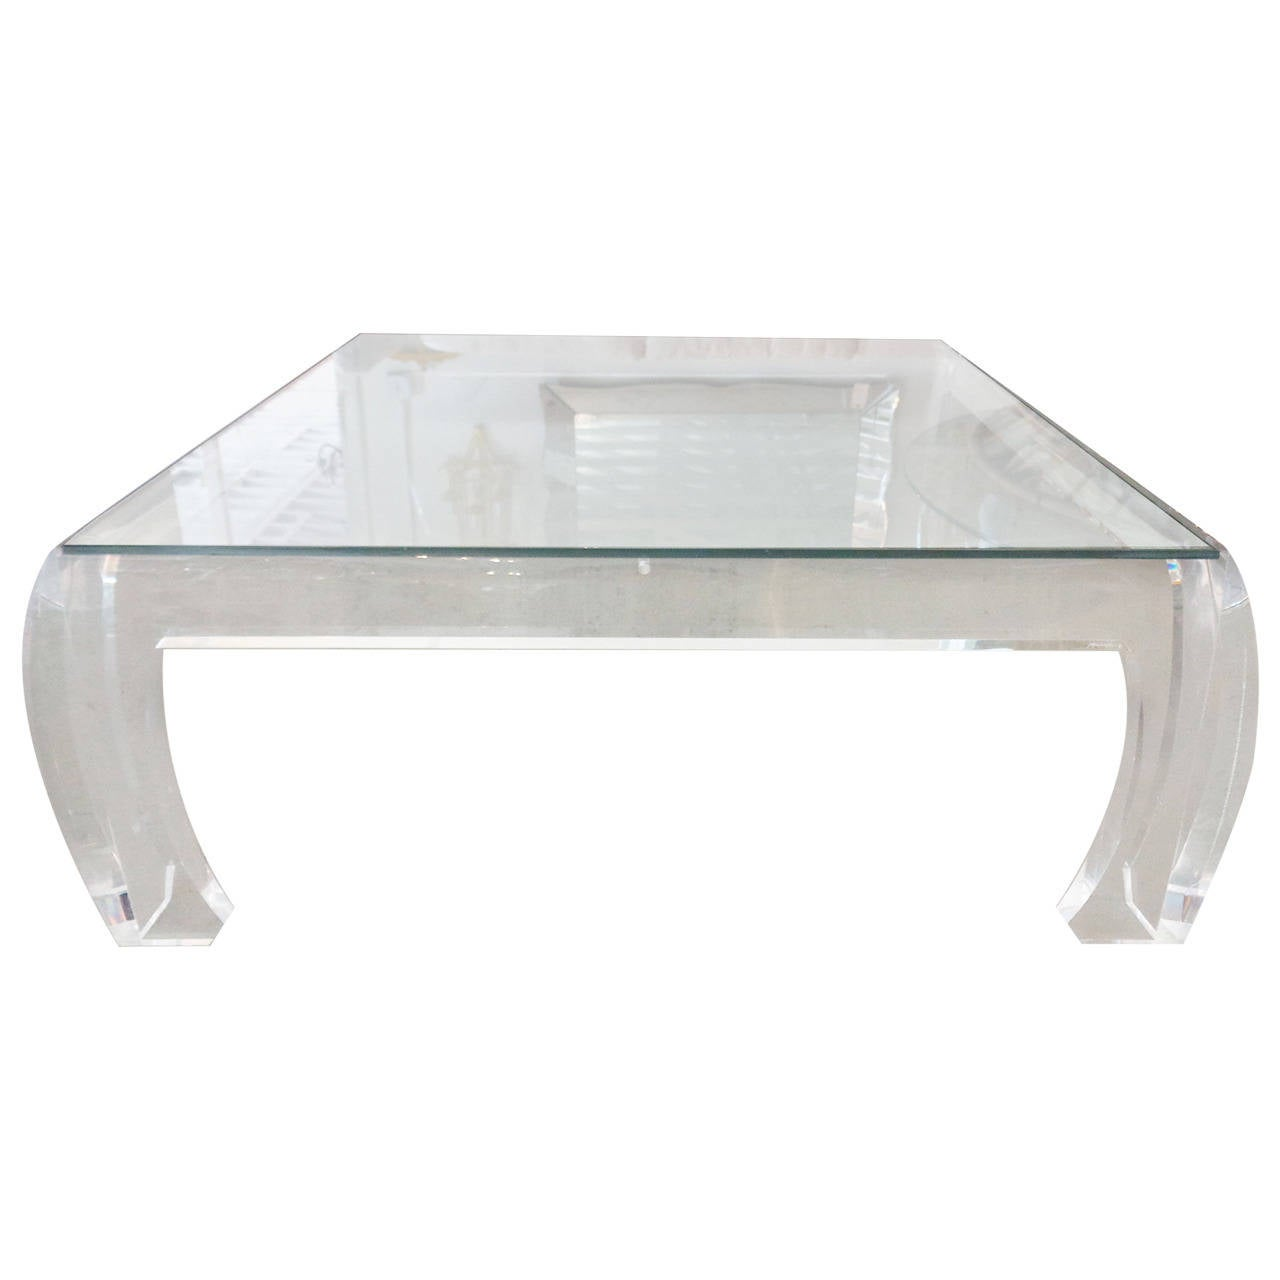 Jeffrey Bigelow Lucite Coffee Table At 1stdibs